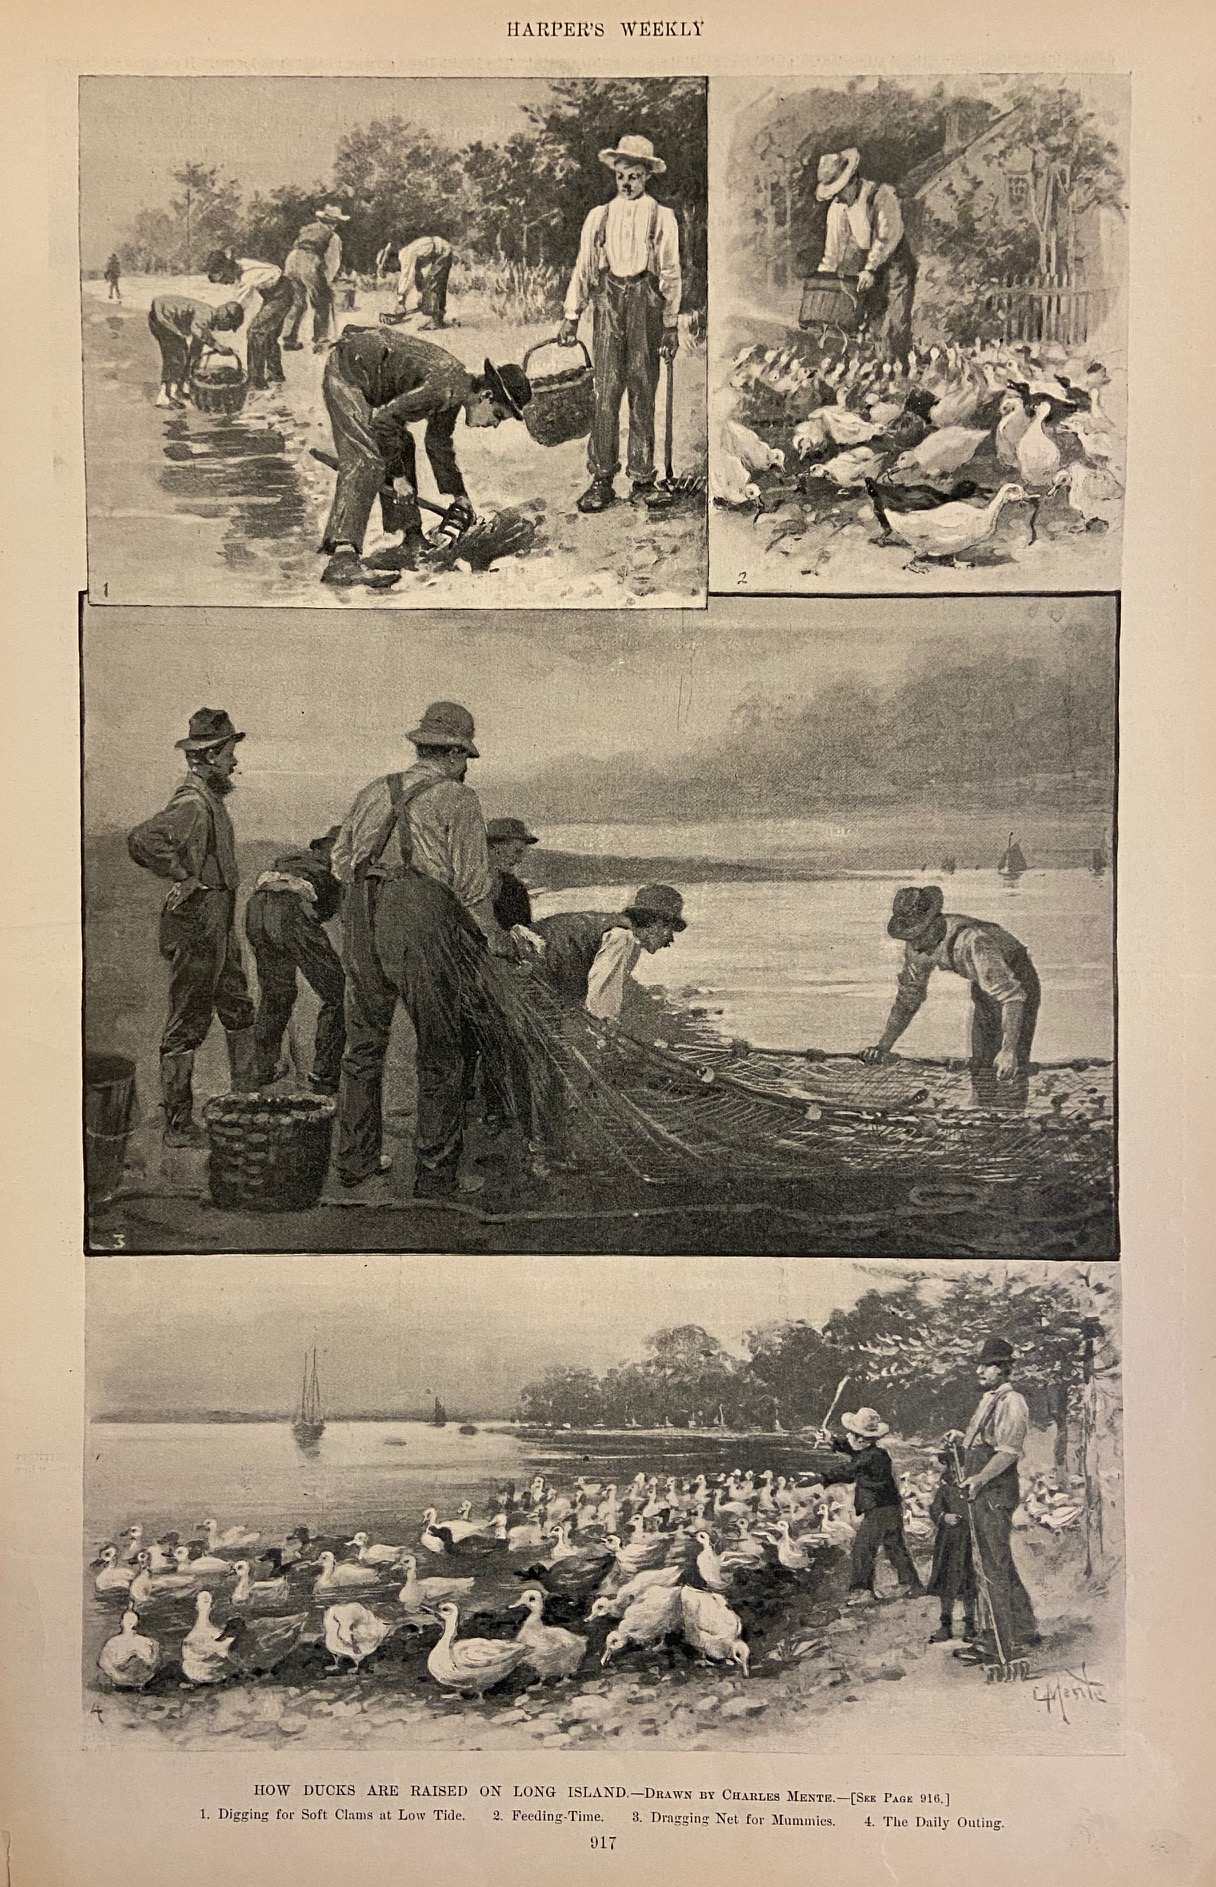 How Ducks Are Raised On Long Island: HARPER'S WEEKLY